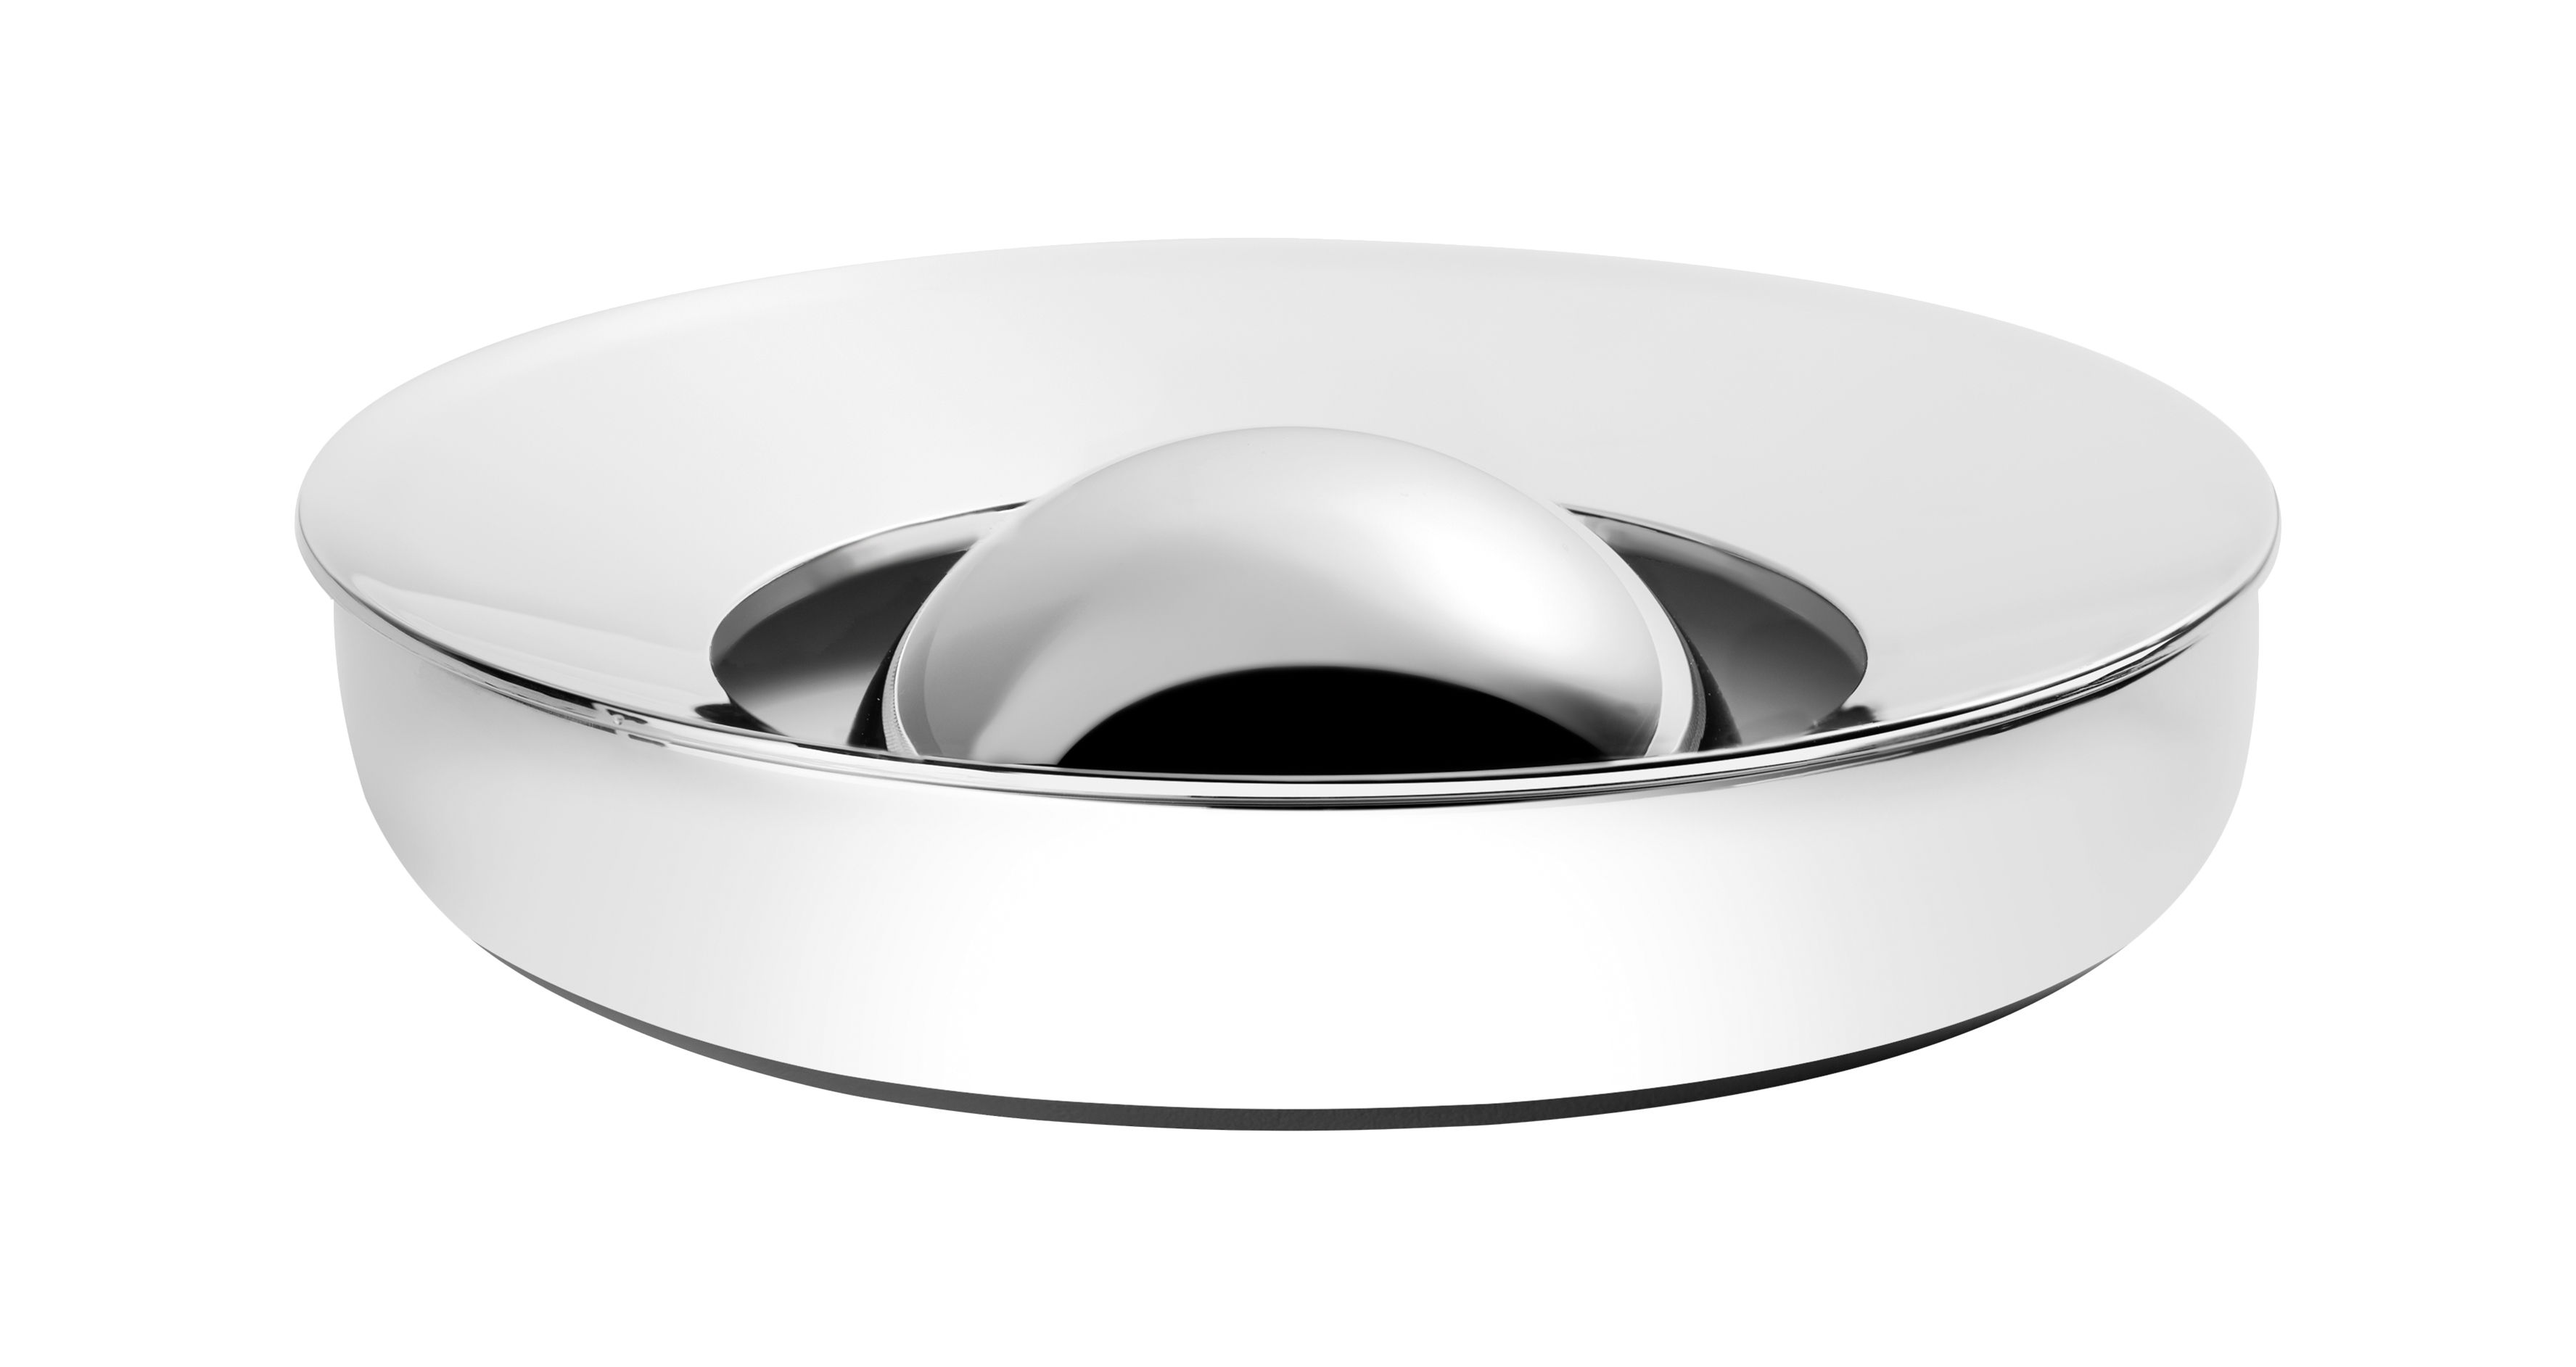 Accessories - Desk & Office Accessories - Oh Ashtray - Ø 9,2 cm by Christofle - Polished steel - Polished steel